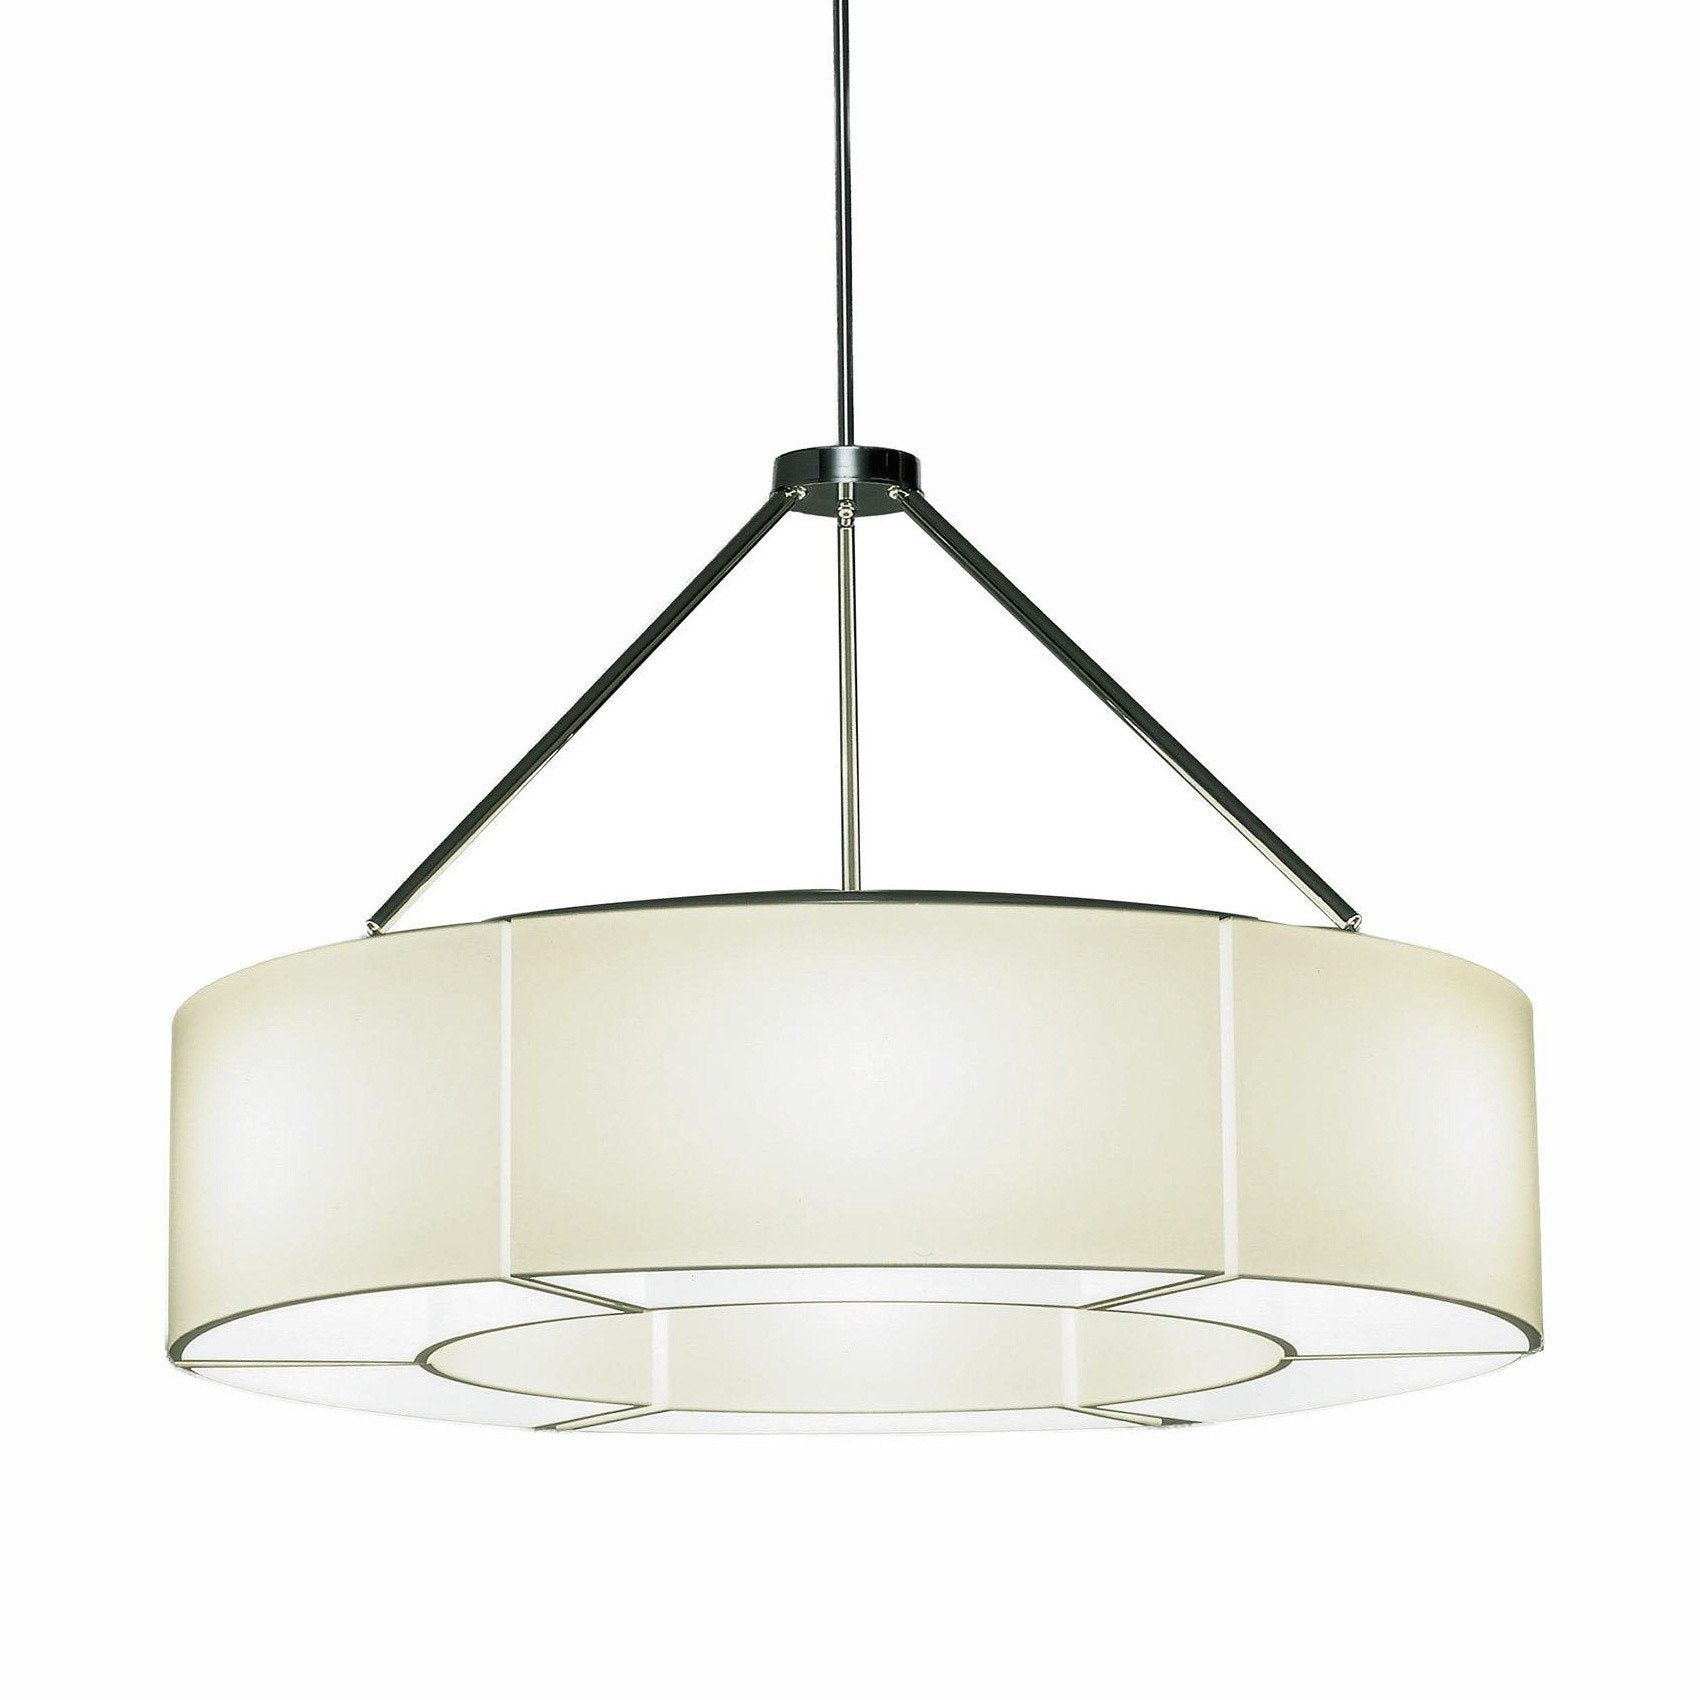 Santa & Cole Sexta Suspension Lamp